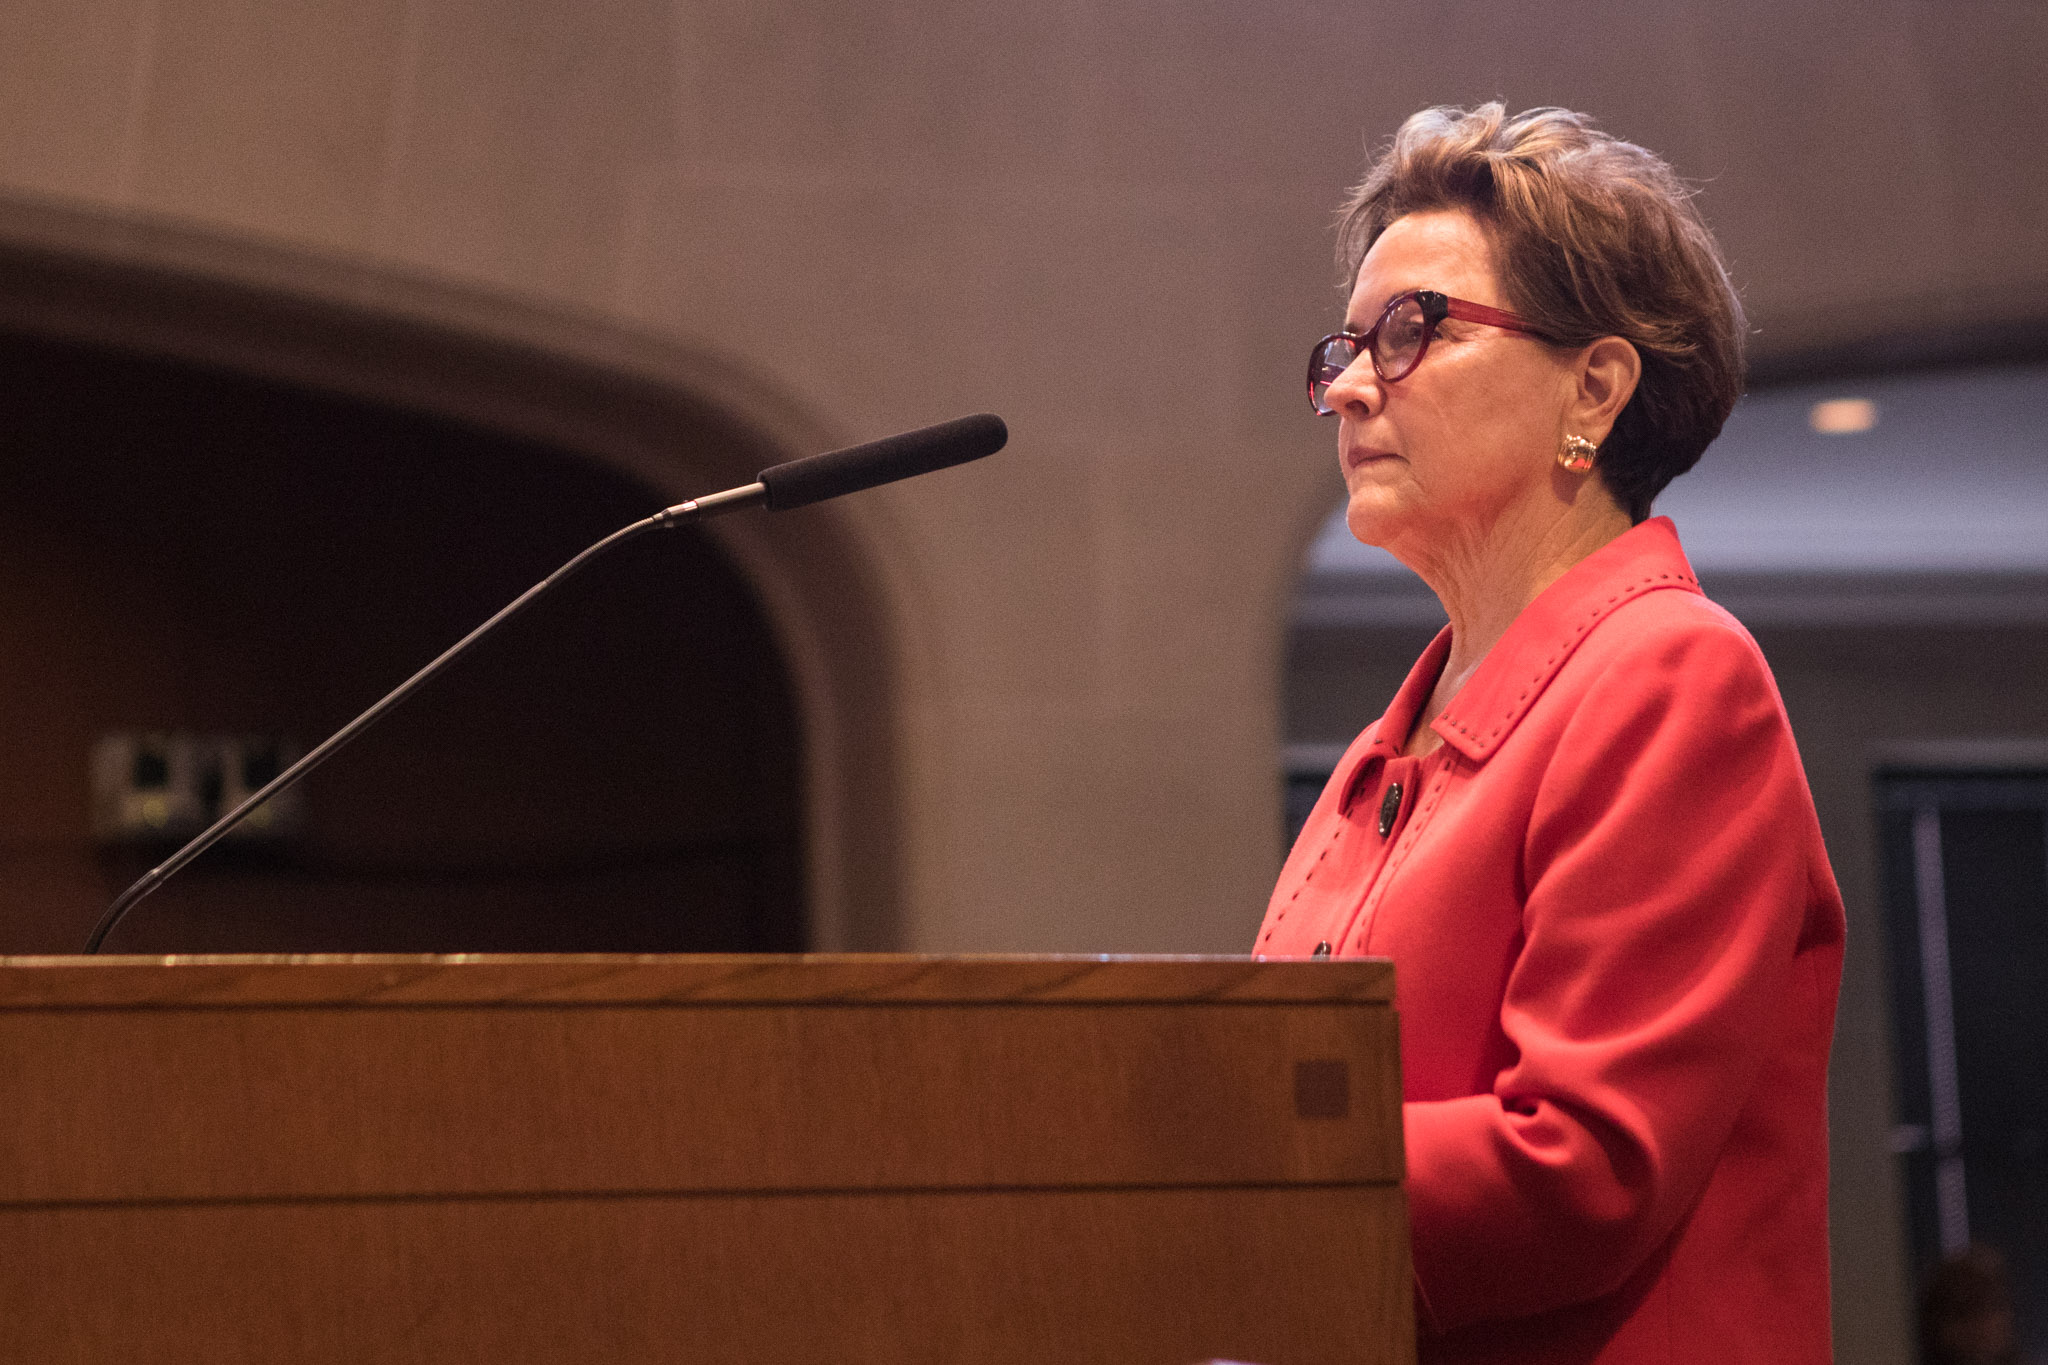 Kathleen Weir Vale, new chairwoman of the Symphony Society of San Antonio, speaks to City Council.